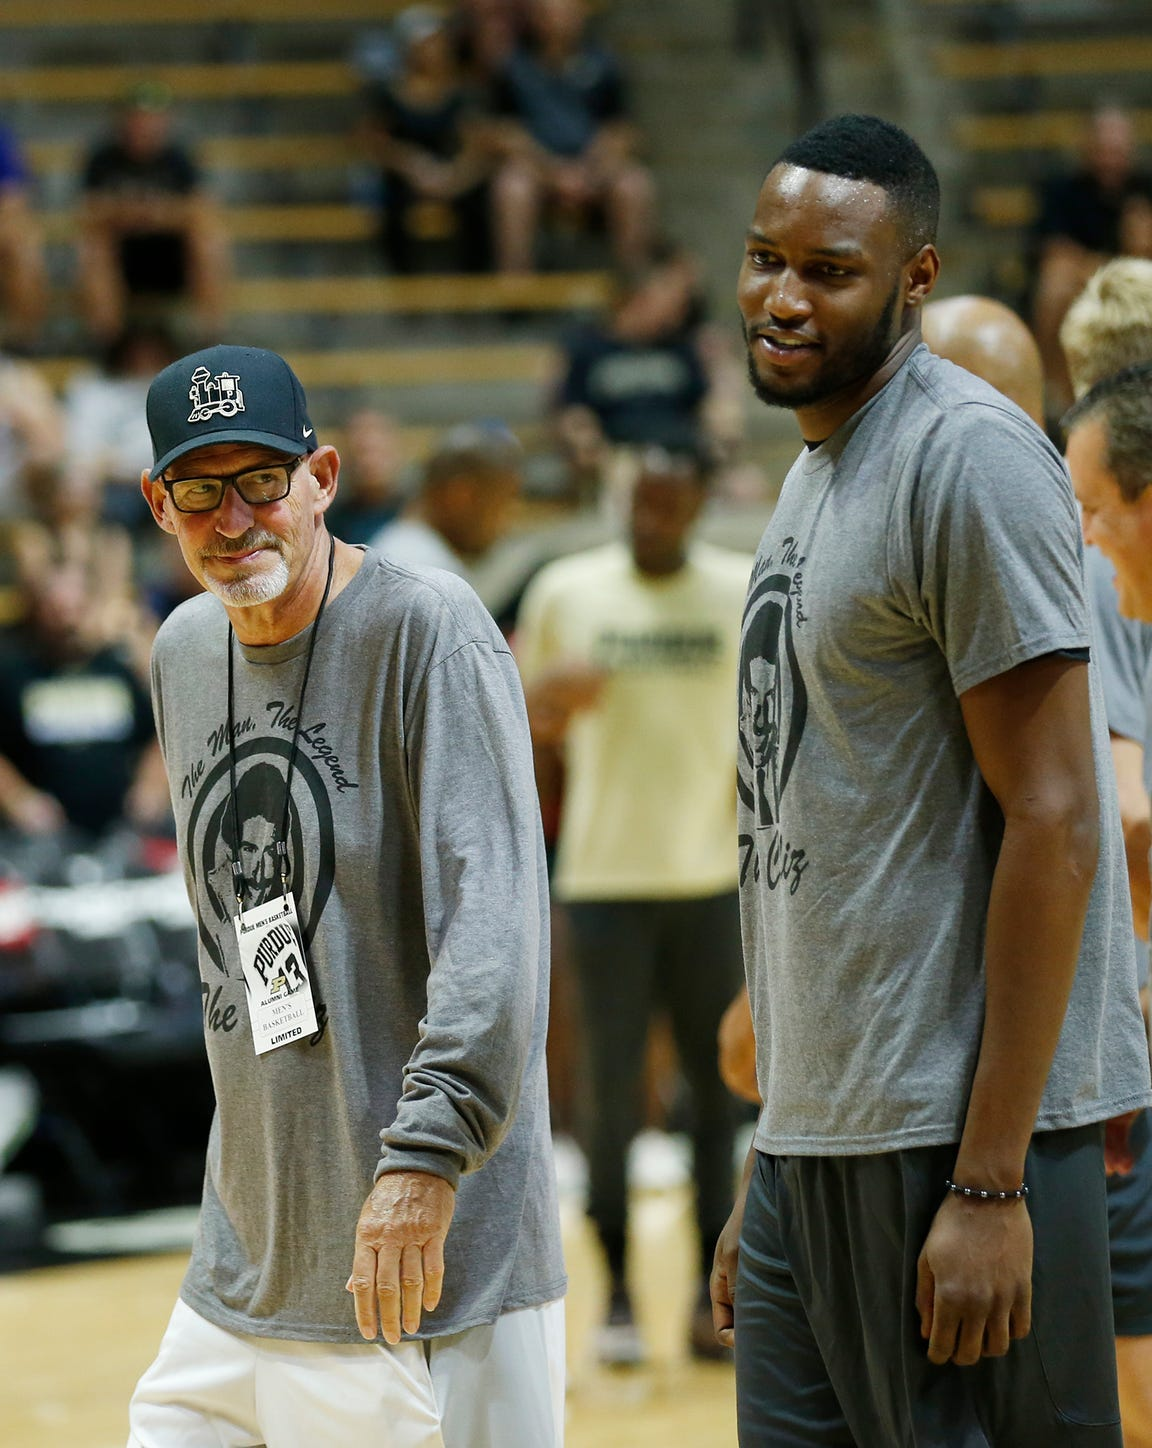 Larry Clisby walks onto Keady Court to talk with the players before the start of the Purdue Alumni basketball game Saturday, August 4, 2018, at Mackey Arena. The long-time radio voice of Boilermakers basketball is battling cancer. The Black team defeated the Gold 101-91.